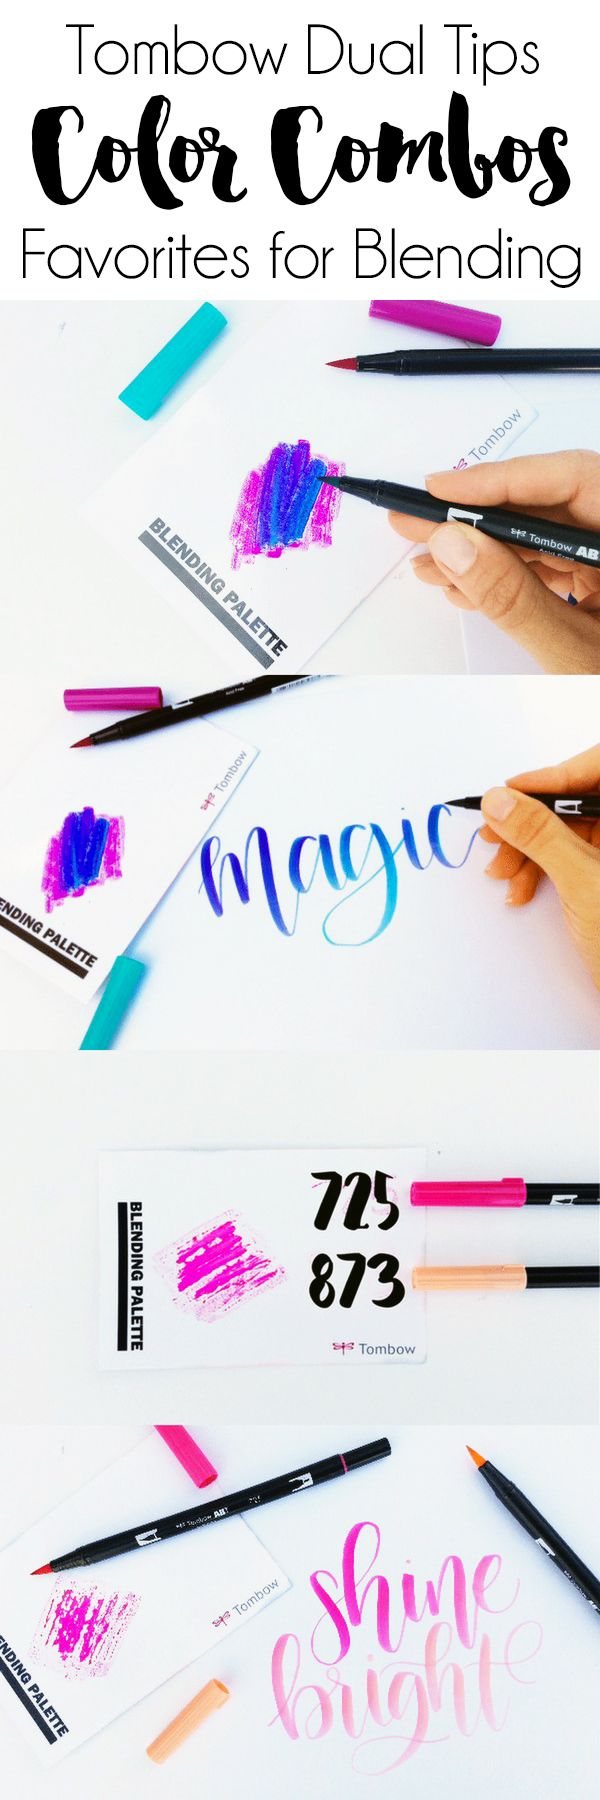 Blending Tombow Dual Tips: Favorite Color Combos. My three favorite color combinations for blending with the Tombow Dual Tip Brush Pens!